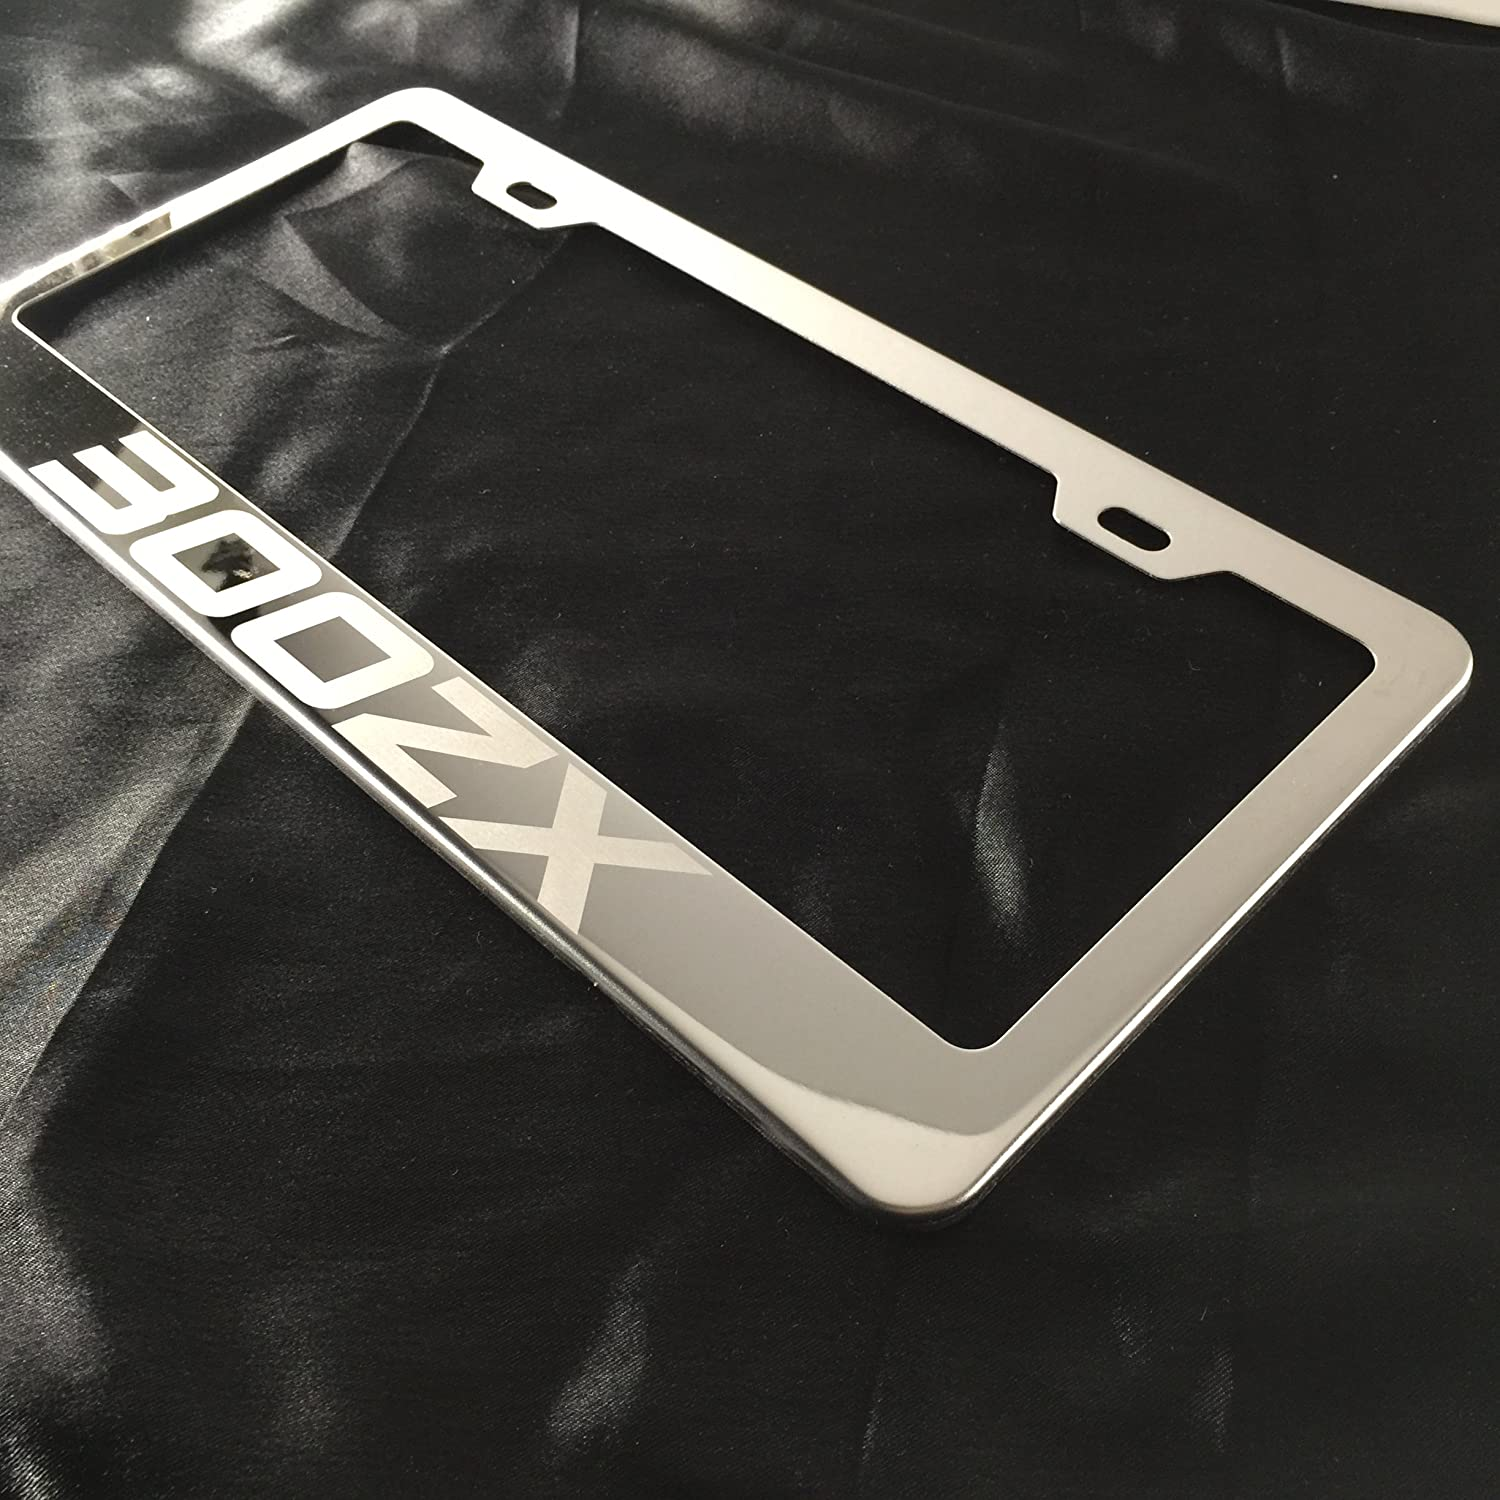 Fit Nissan 300ZX Laser Engraved Stainless Steel Chrome Polish License Plate Frame